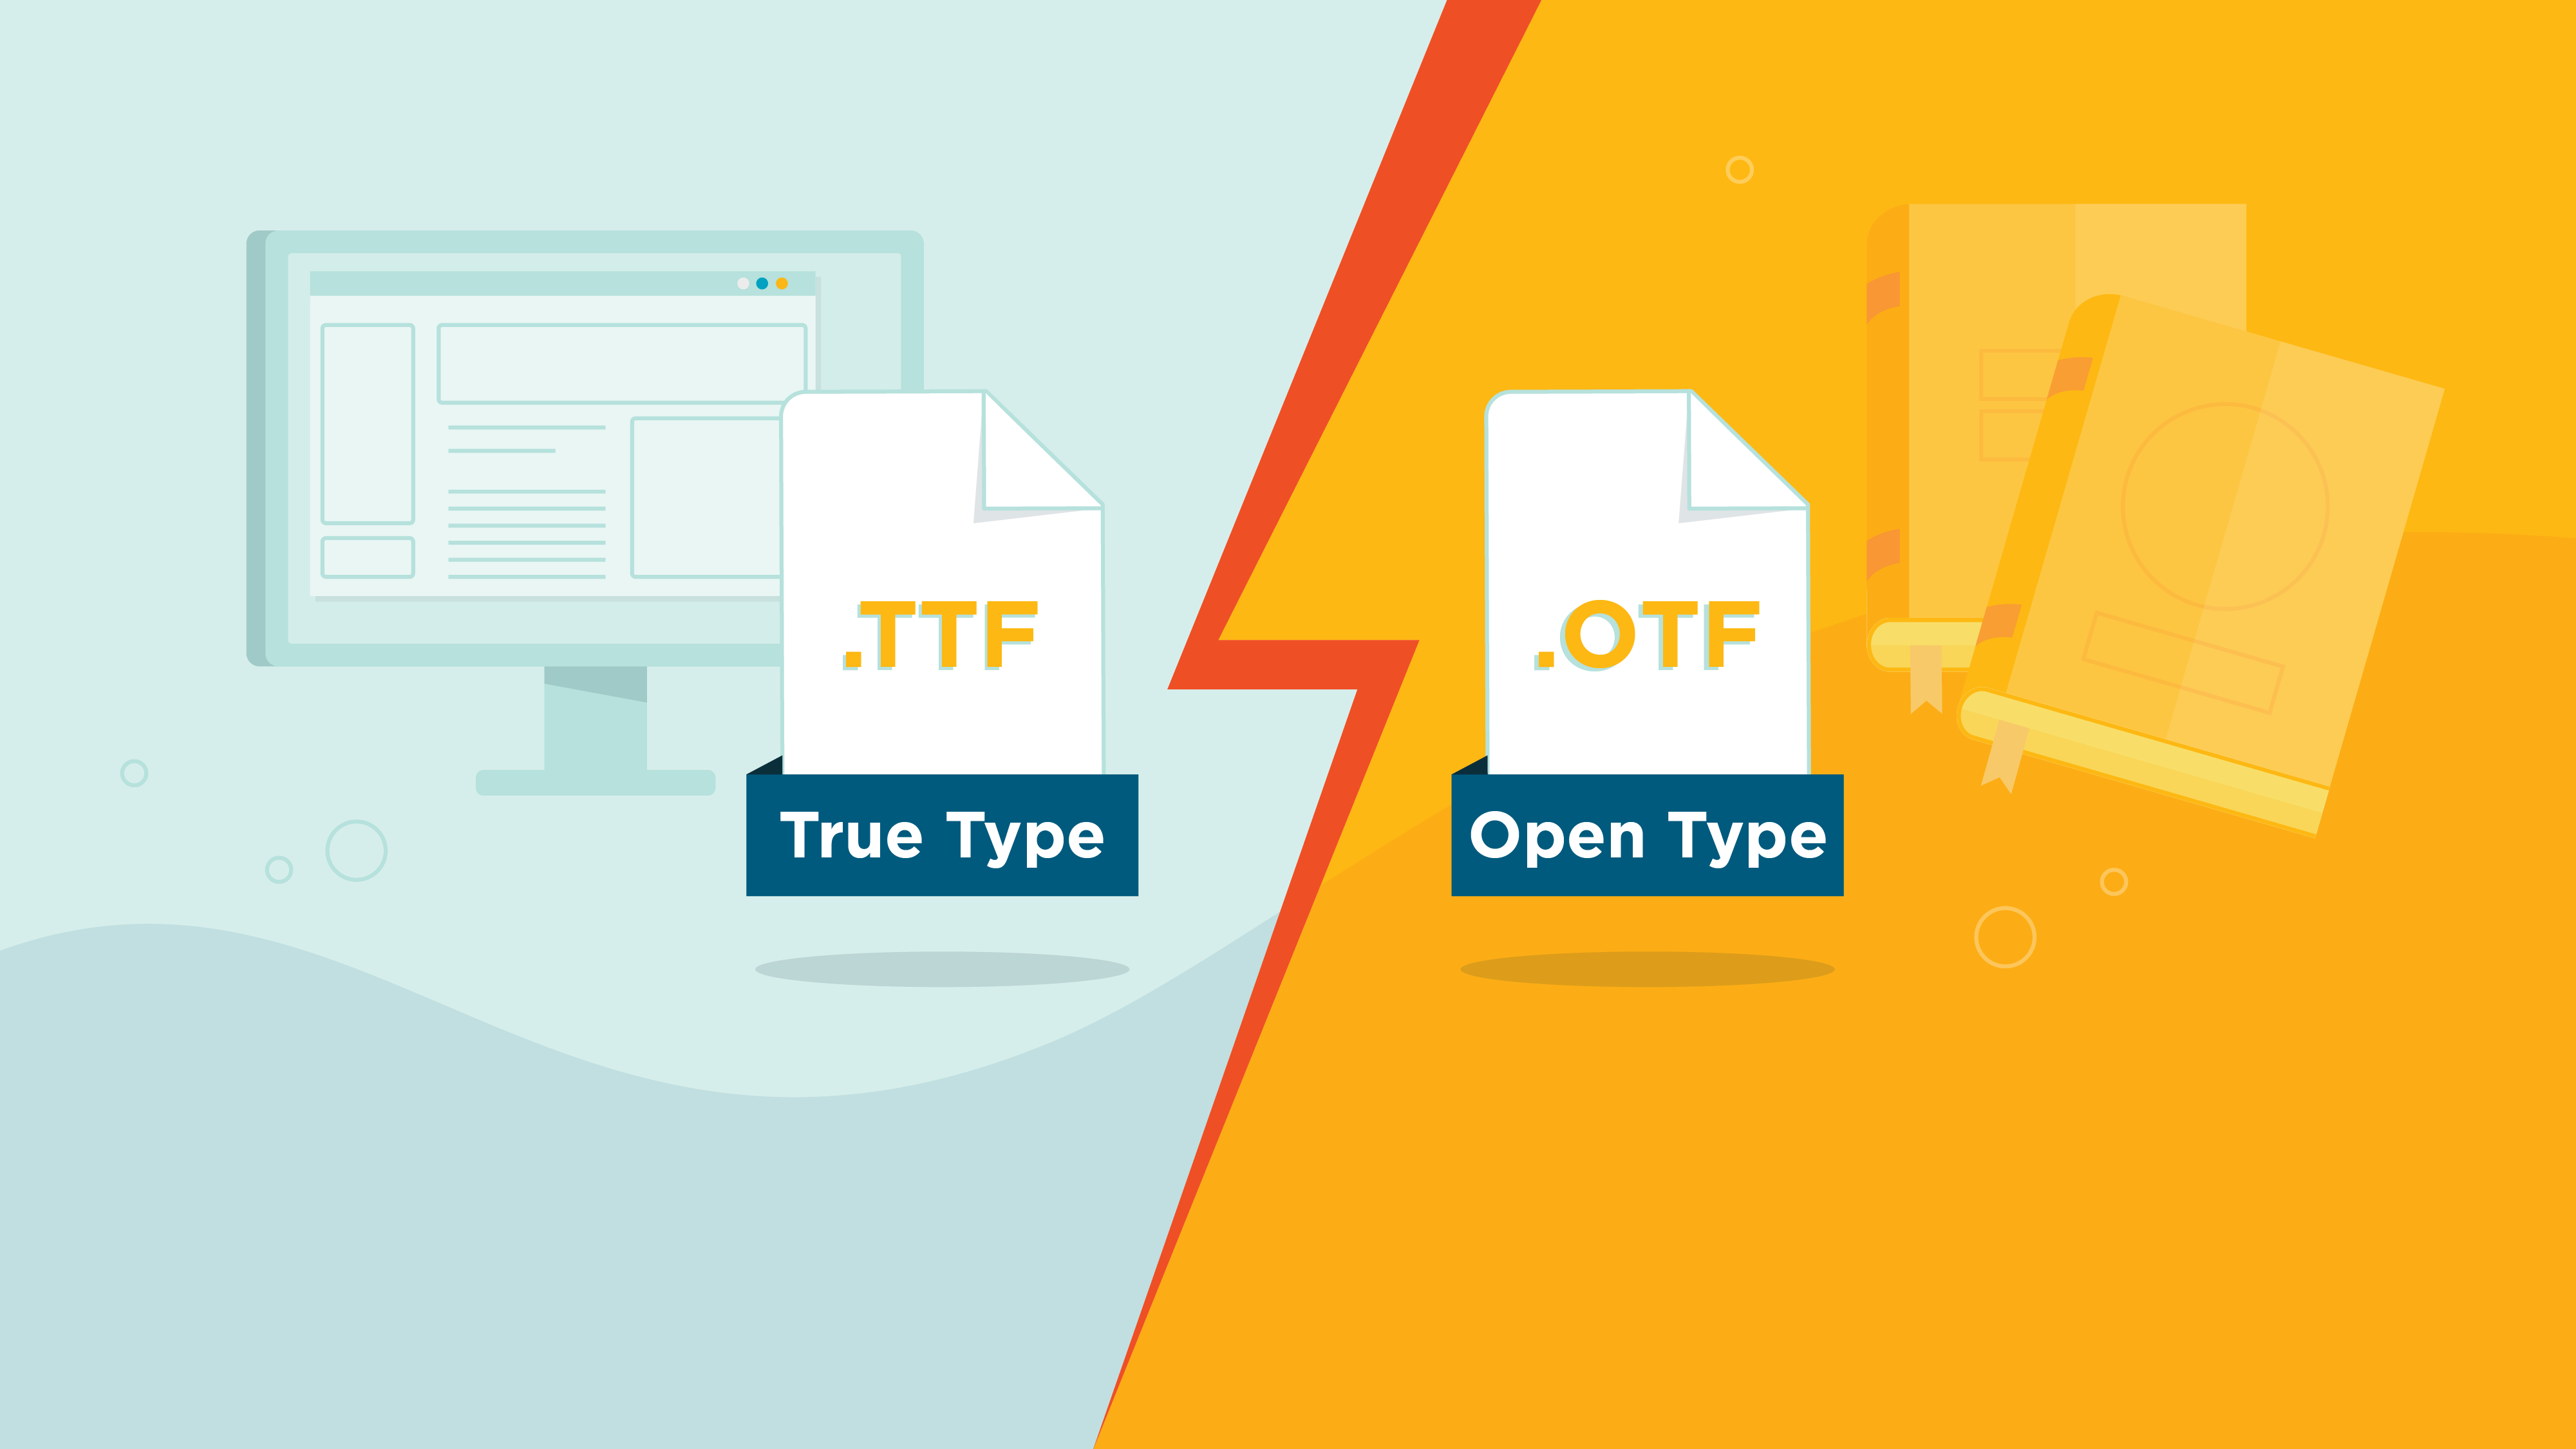 How to Use OTF and TTF